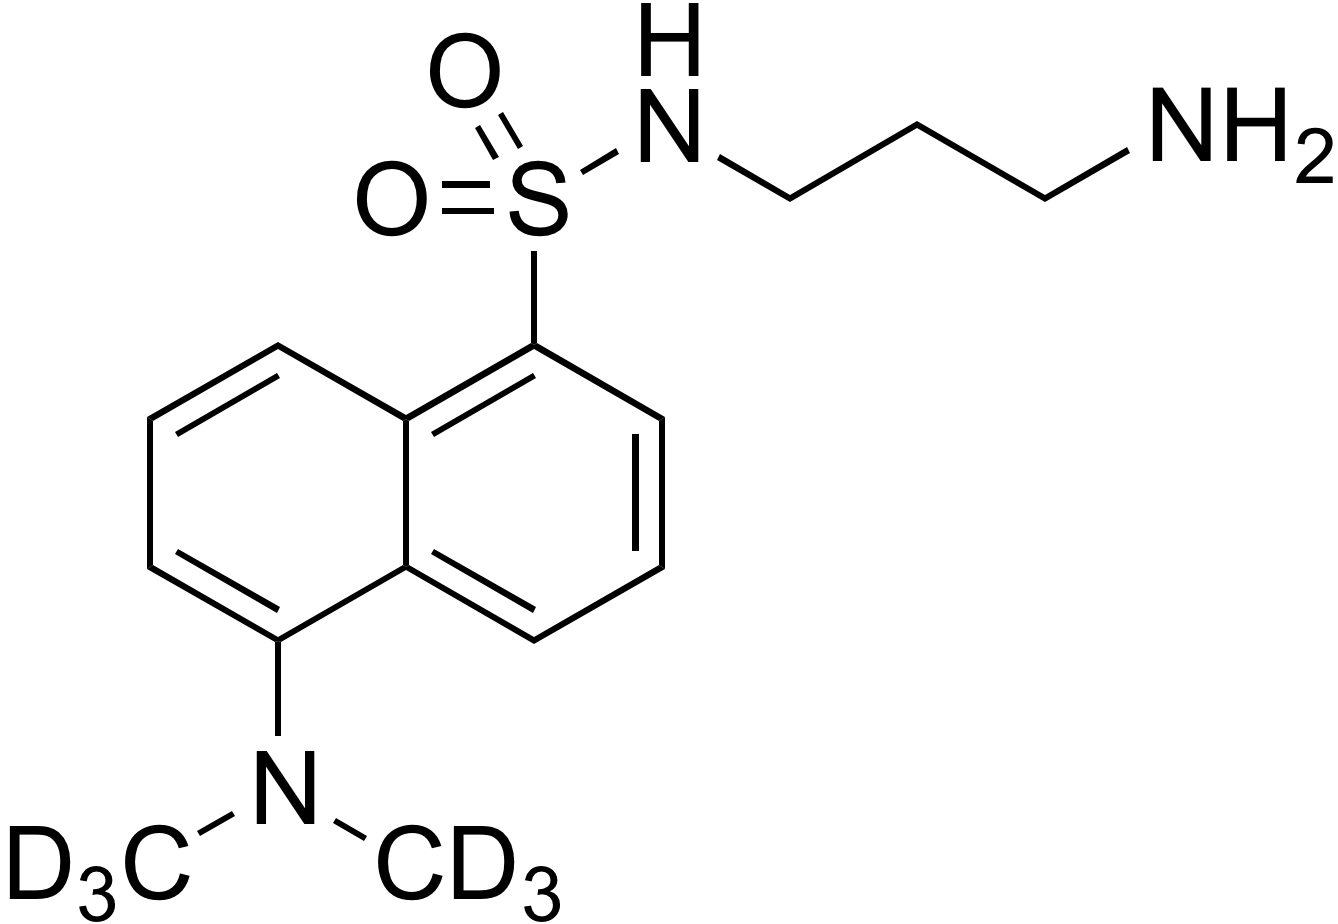 N-Dansyl-d<sub>6</sub> 1,3-diaminopropane